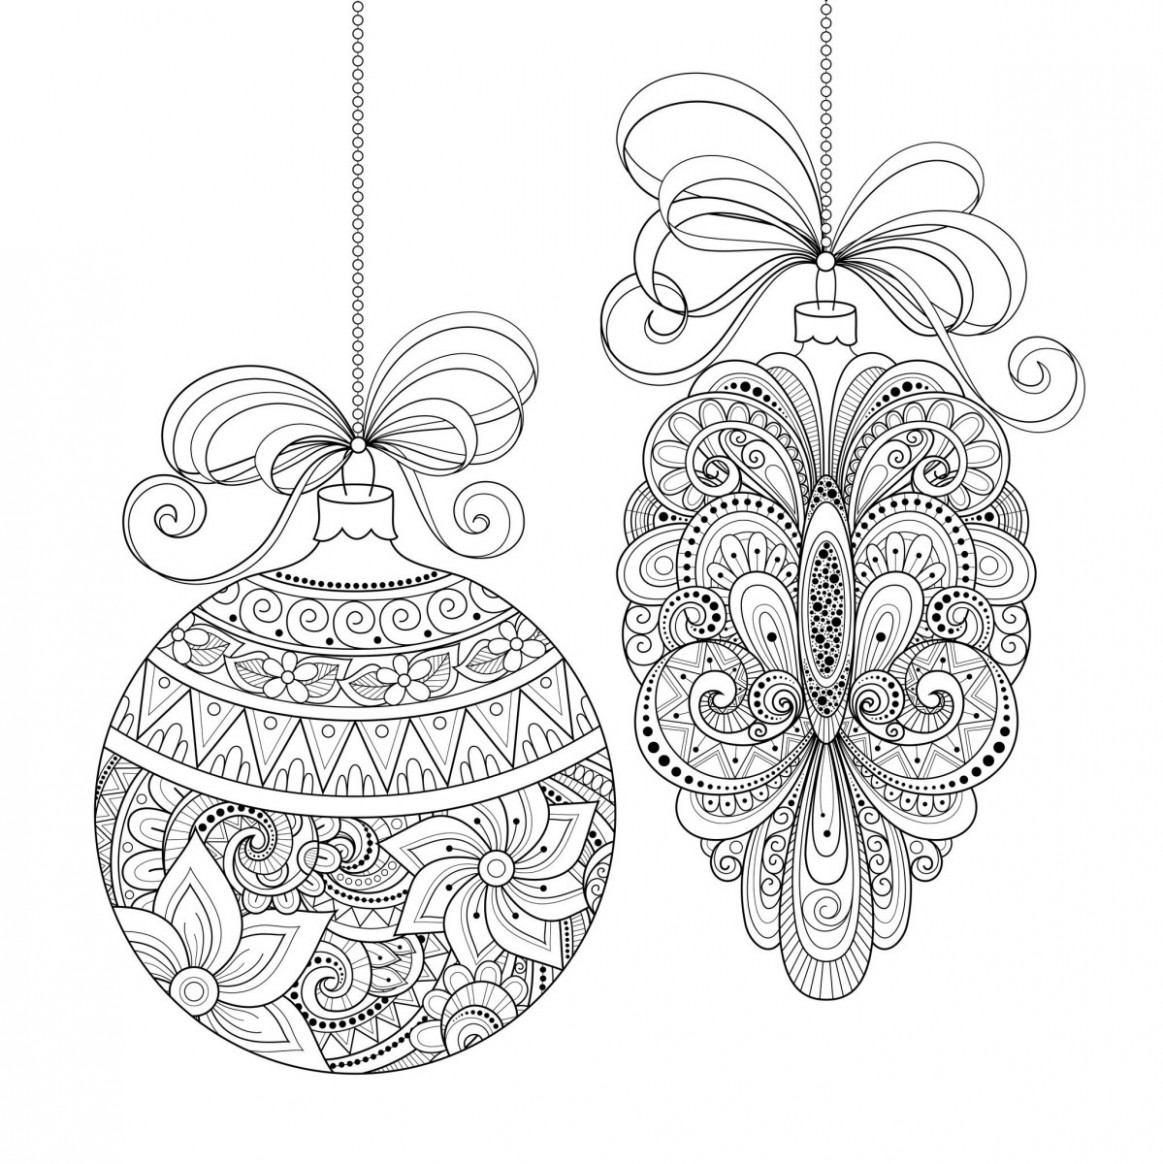 Adult Christmas Coloring Pages Adult Christmas Coloring Book Stvx ...